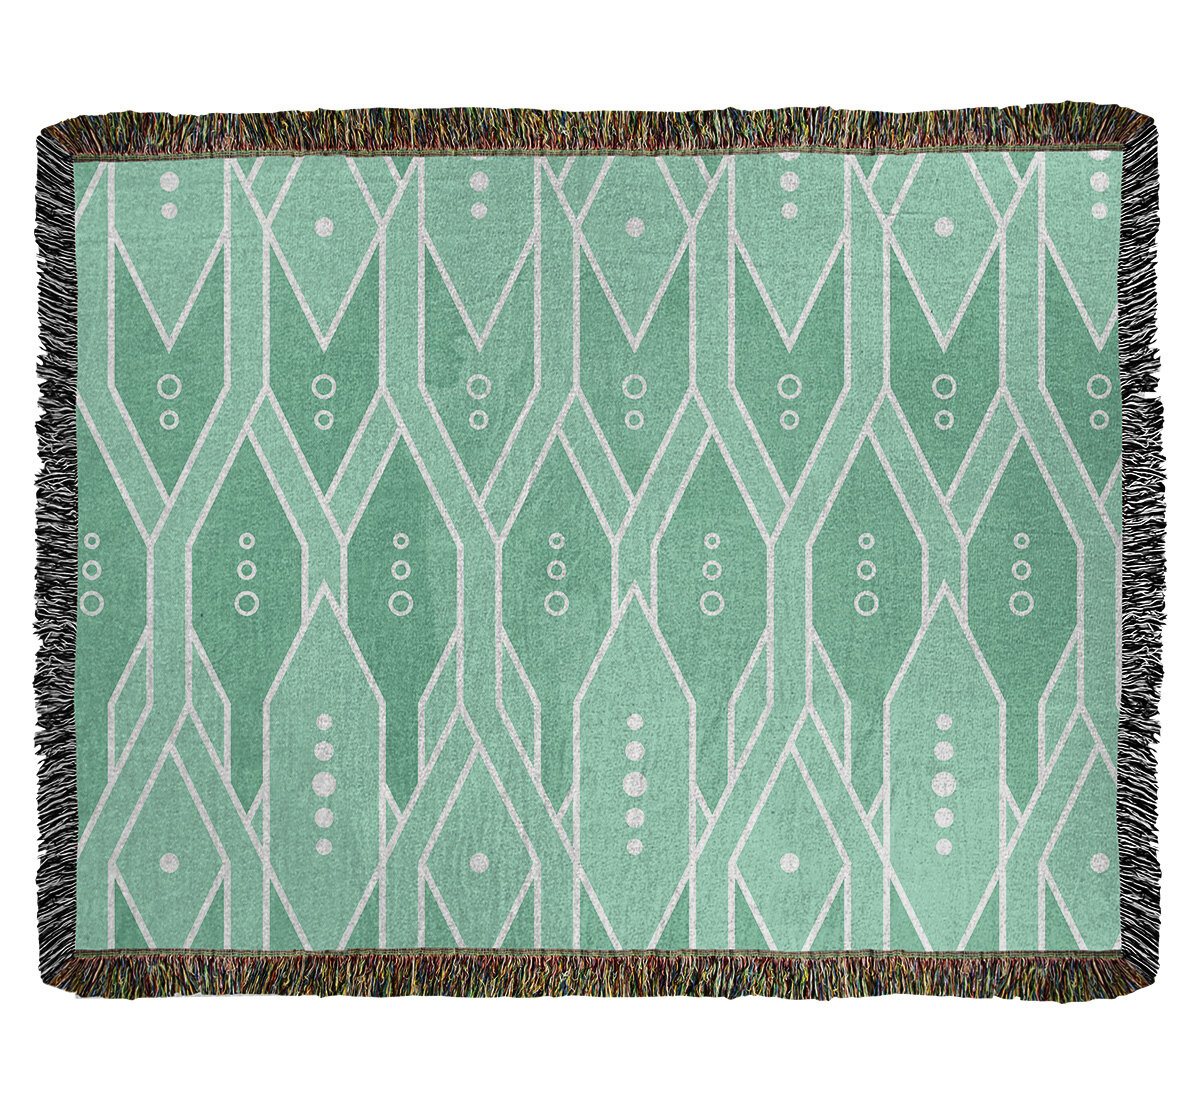 East Urban Home Mcguigan Trellis Pattern Woven Cotton Throw Wayfair